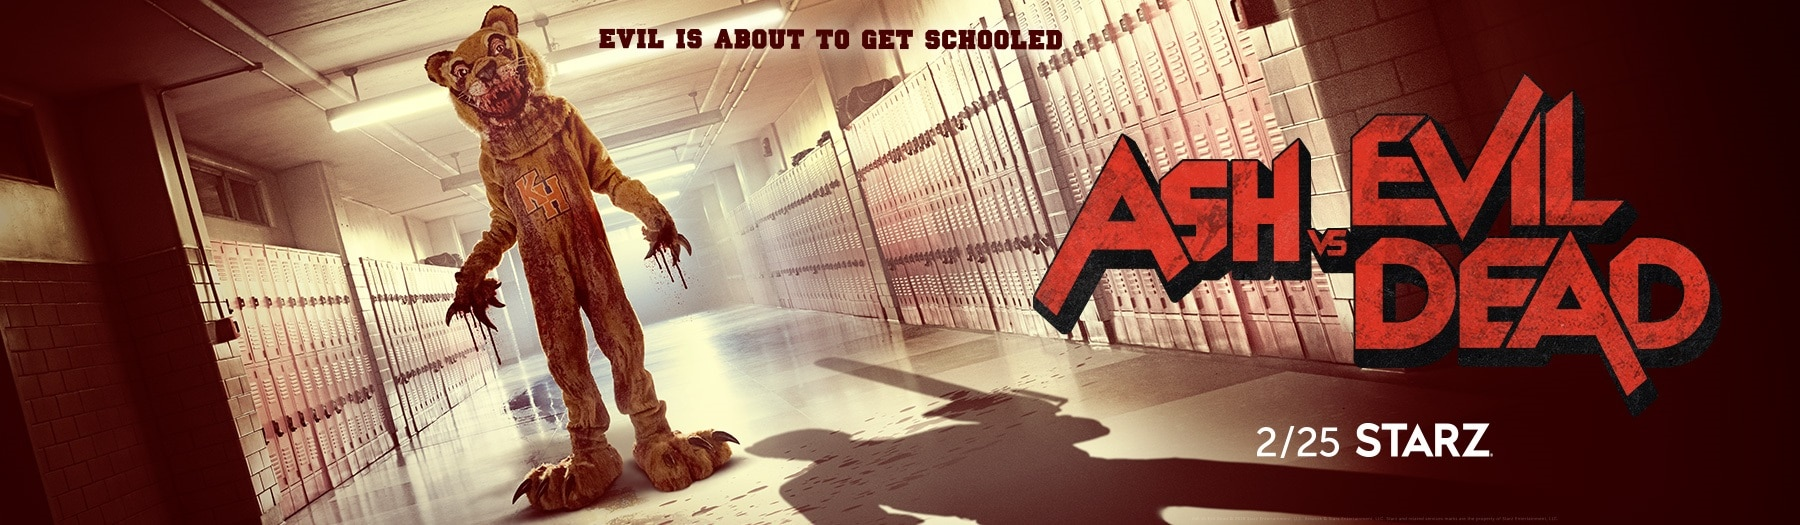 EDS3 NYCC B 1800x525 - Meet Ash's Daughter in First Look at Ash vs Evil Dead Season 3!